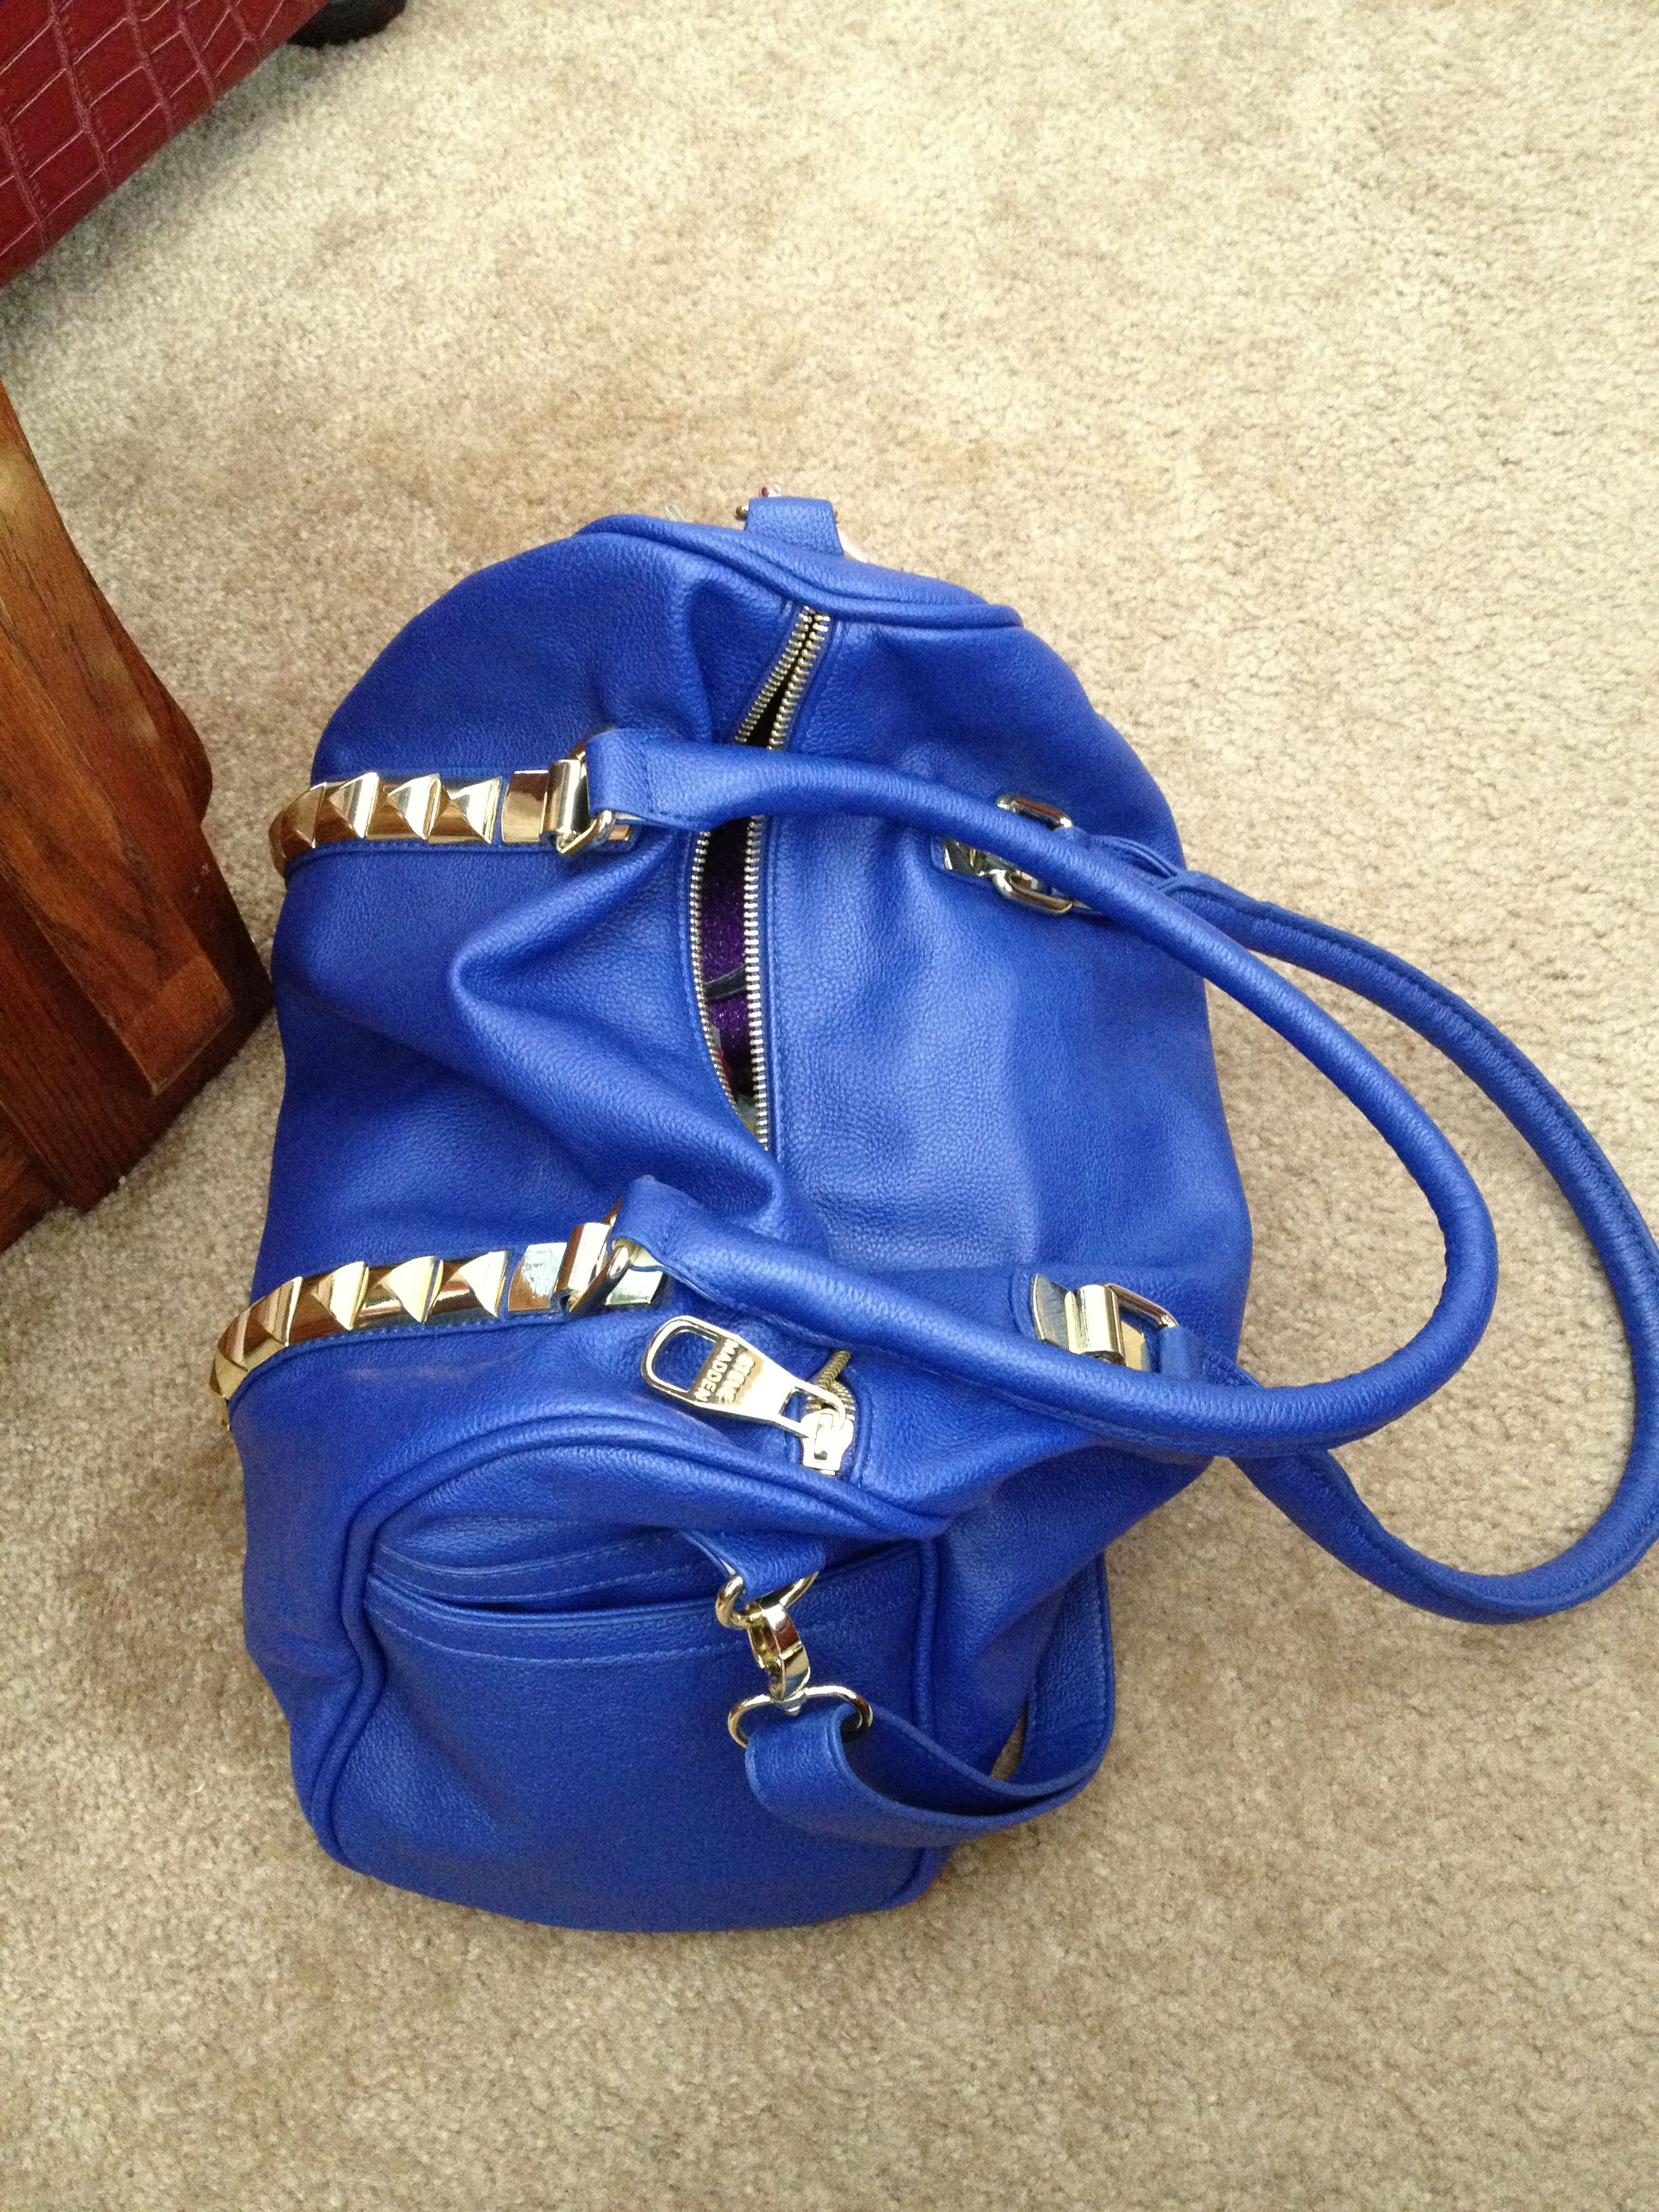 379372a27f My new Steve Madden purse I found at Ross for $39!! | Clothes ...